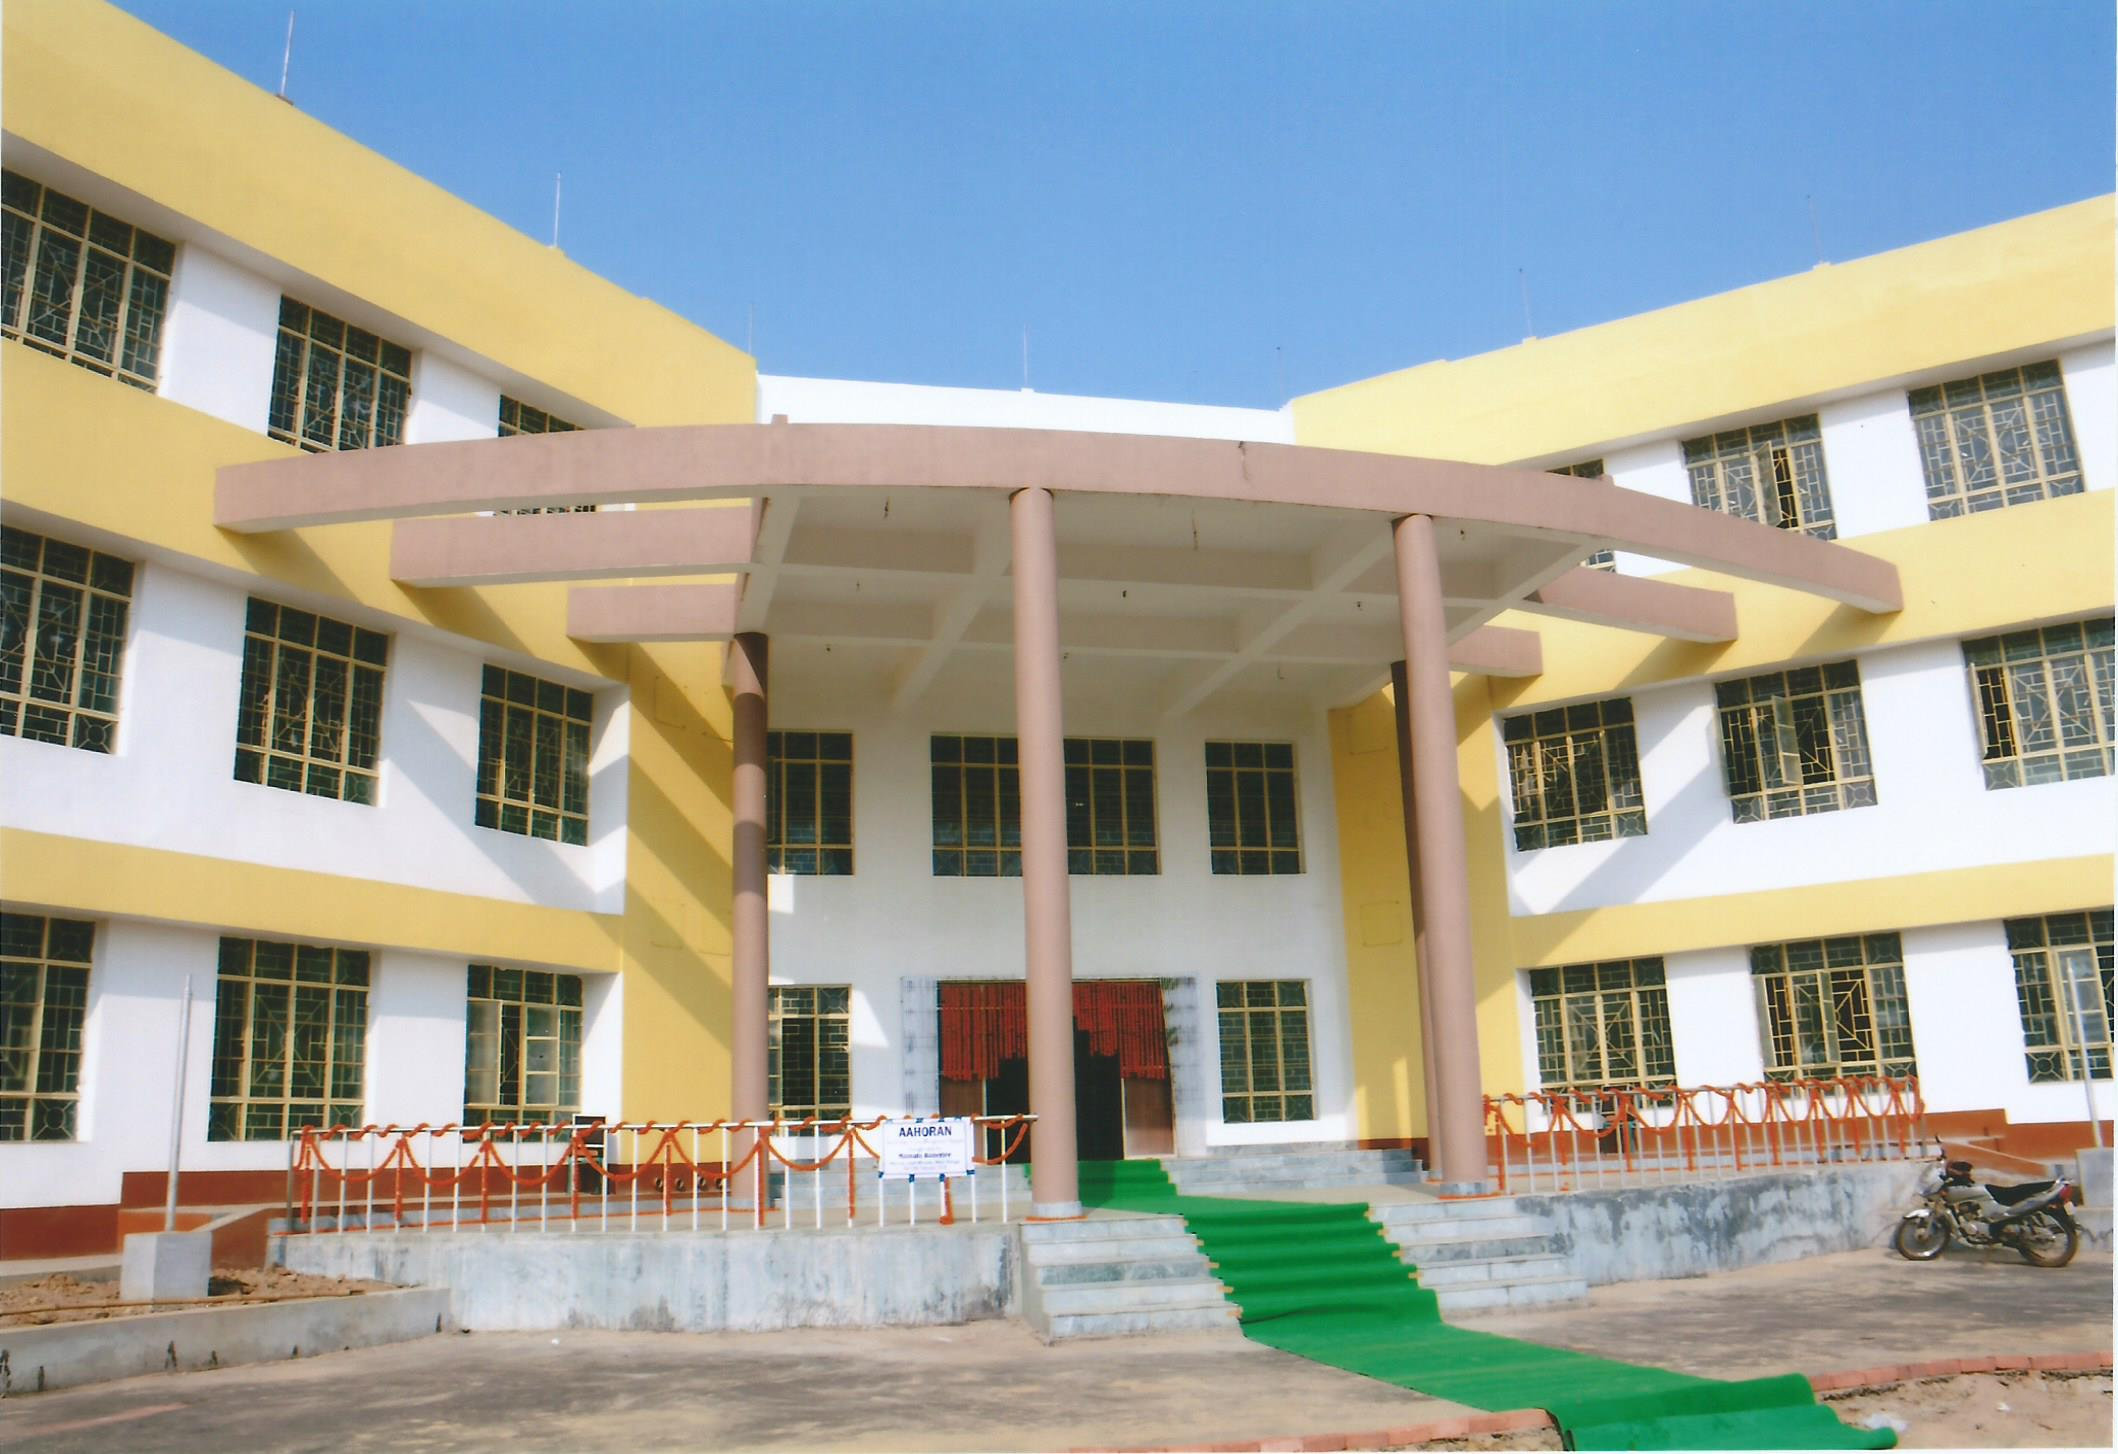 State Institute of Hotel Management at Durgapur